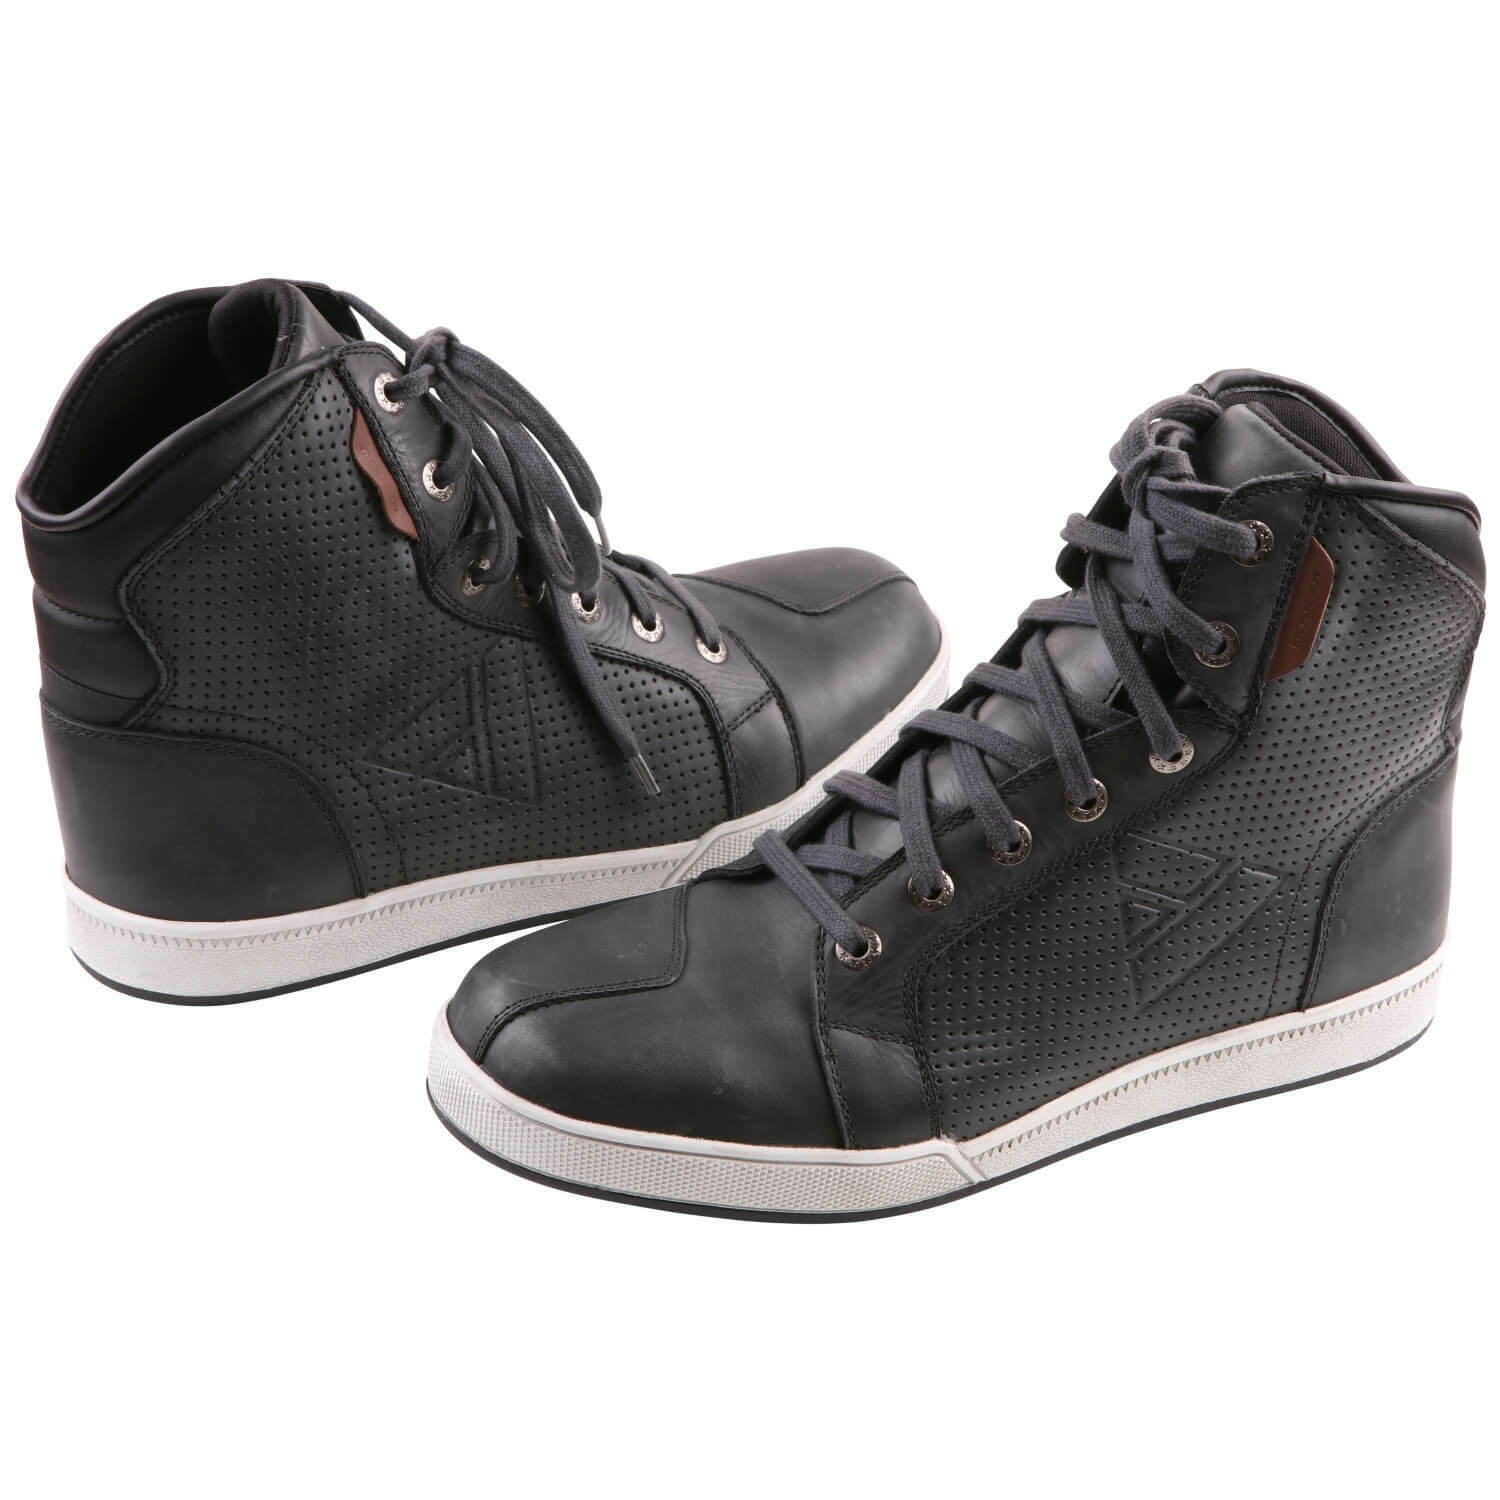 Modeka Midtown Men's Trainers Motorcycle Boots Leather - Grey